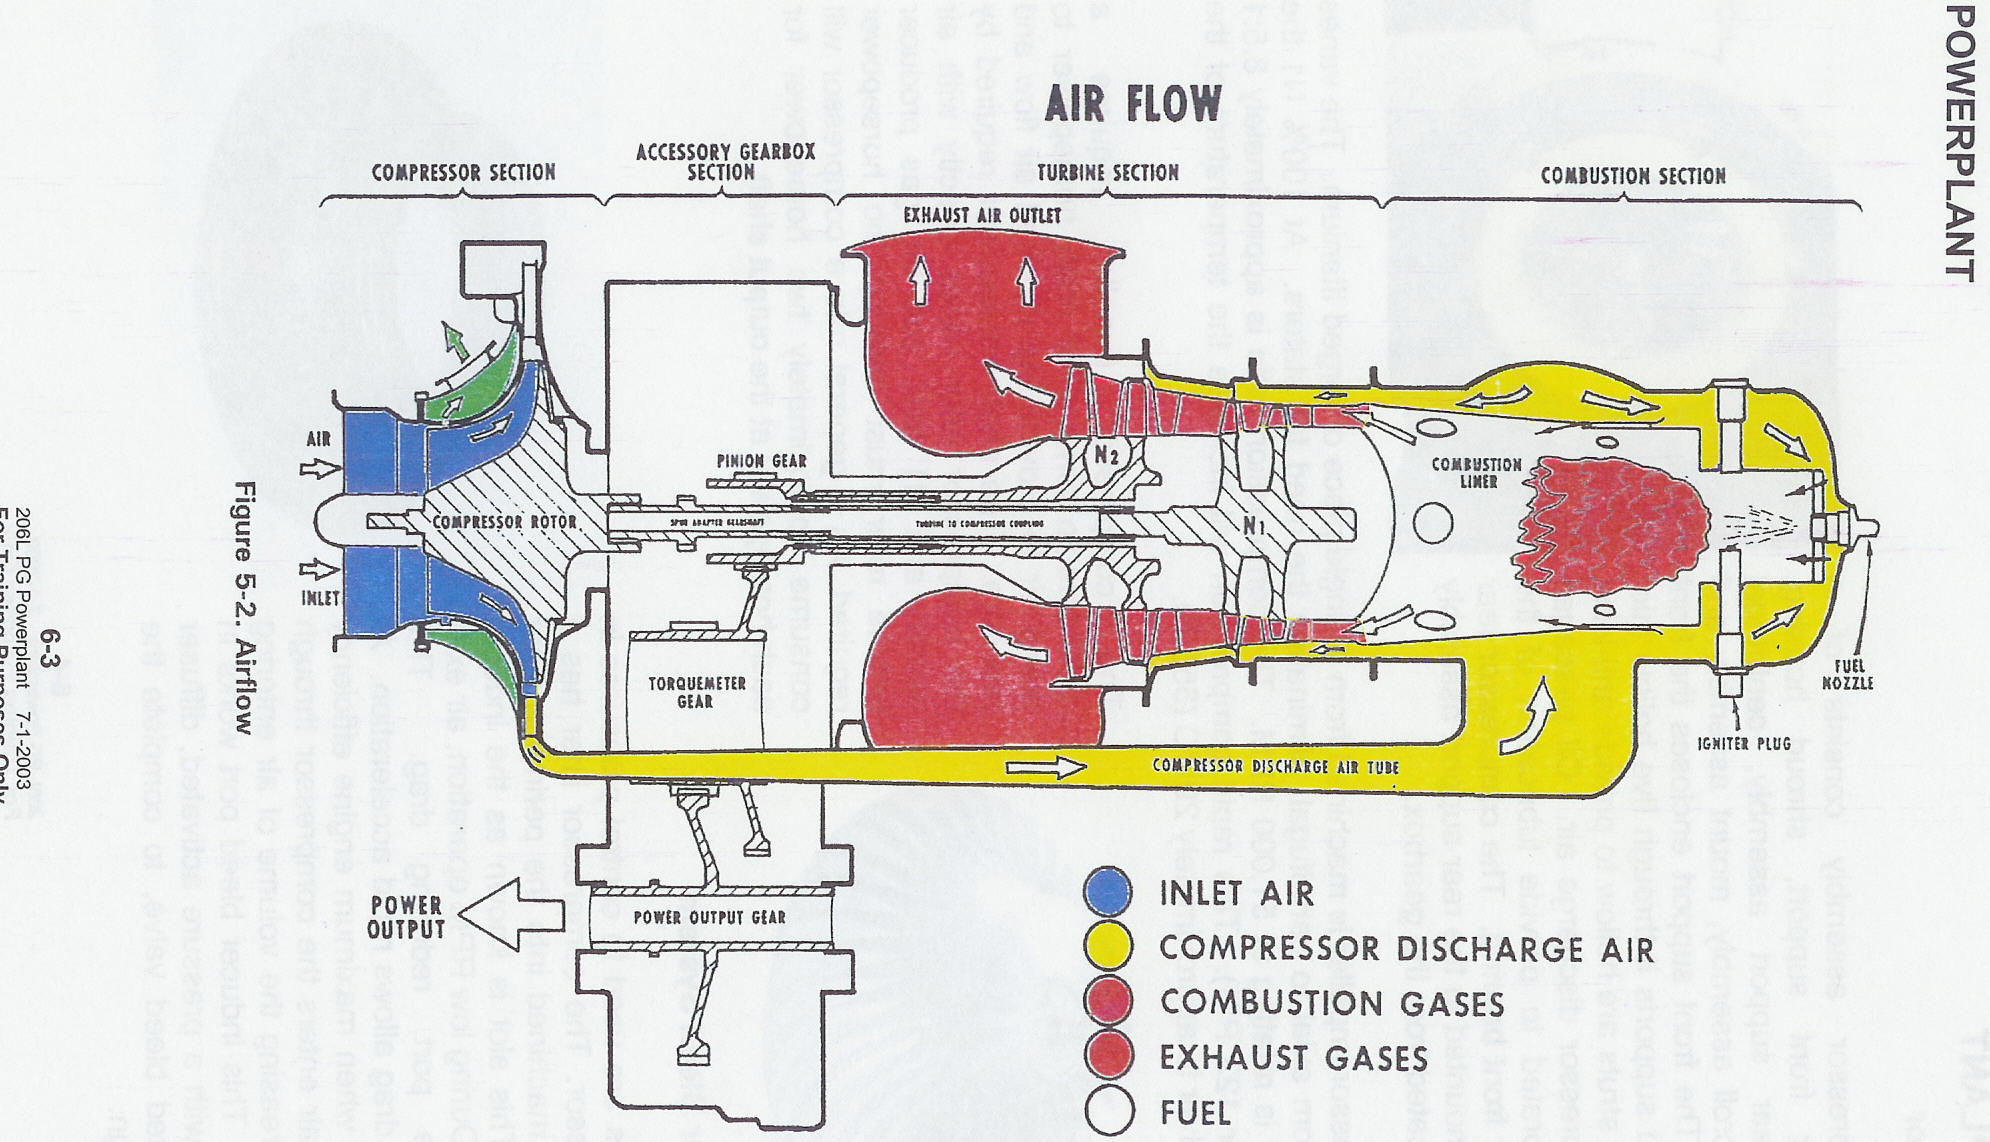 Helicopter Turbine Transition Training Diagram Of A Standard Jet Engine See Figures Instrument And